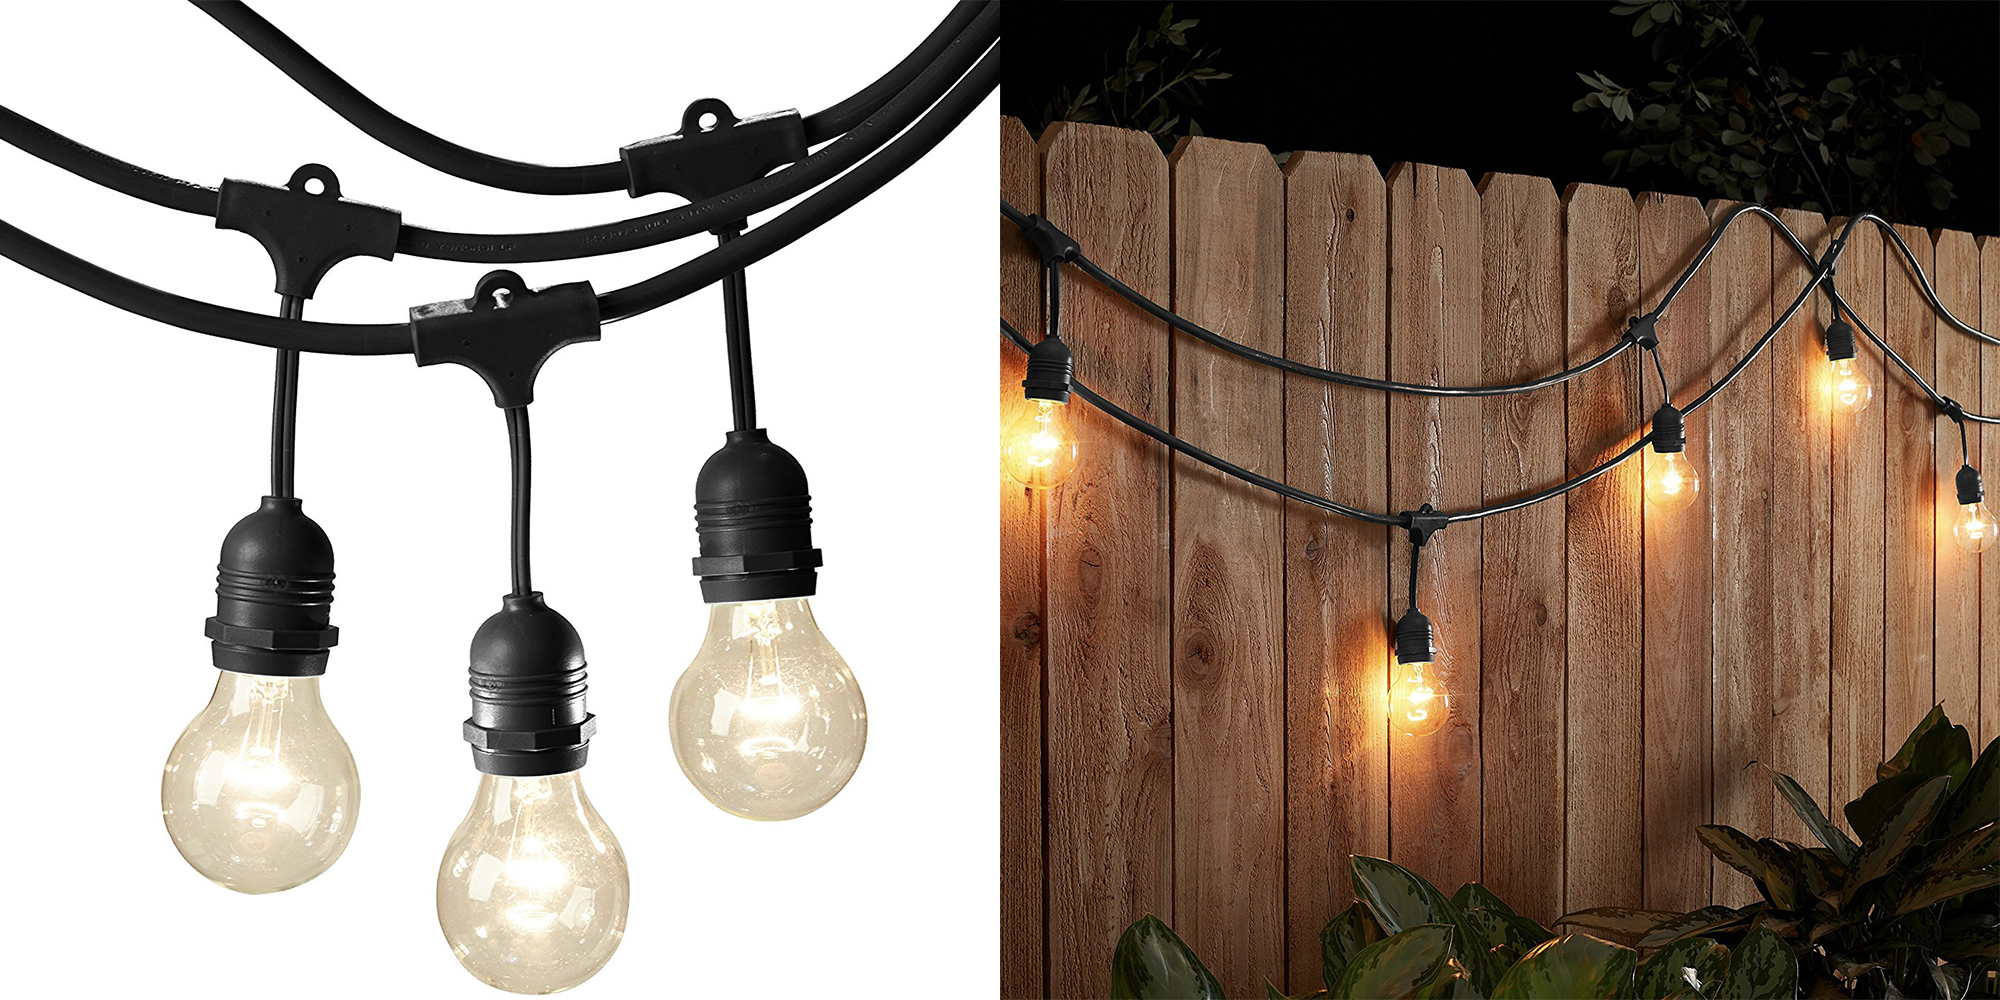 Amazon makes those cool outdoor string lights now: 48-foot for $40 shipped